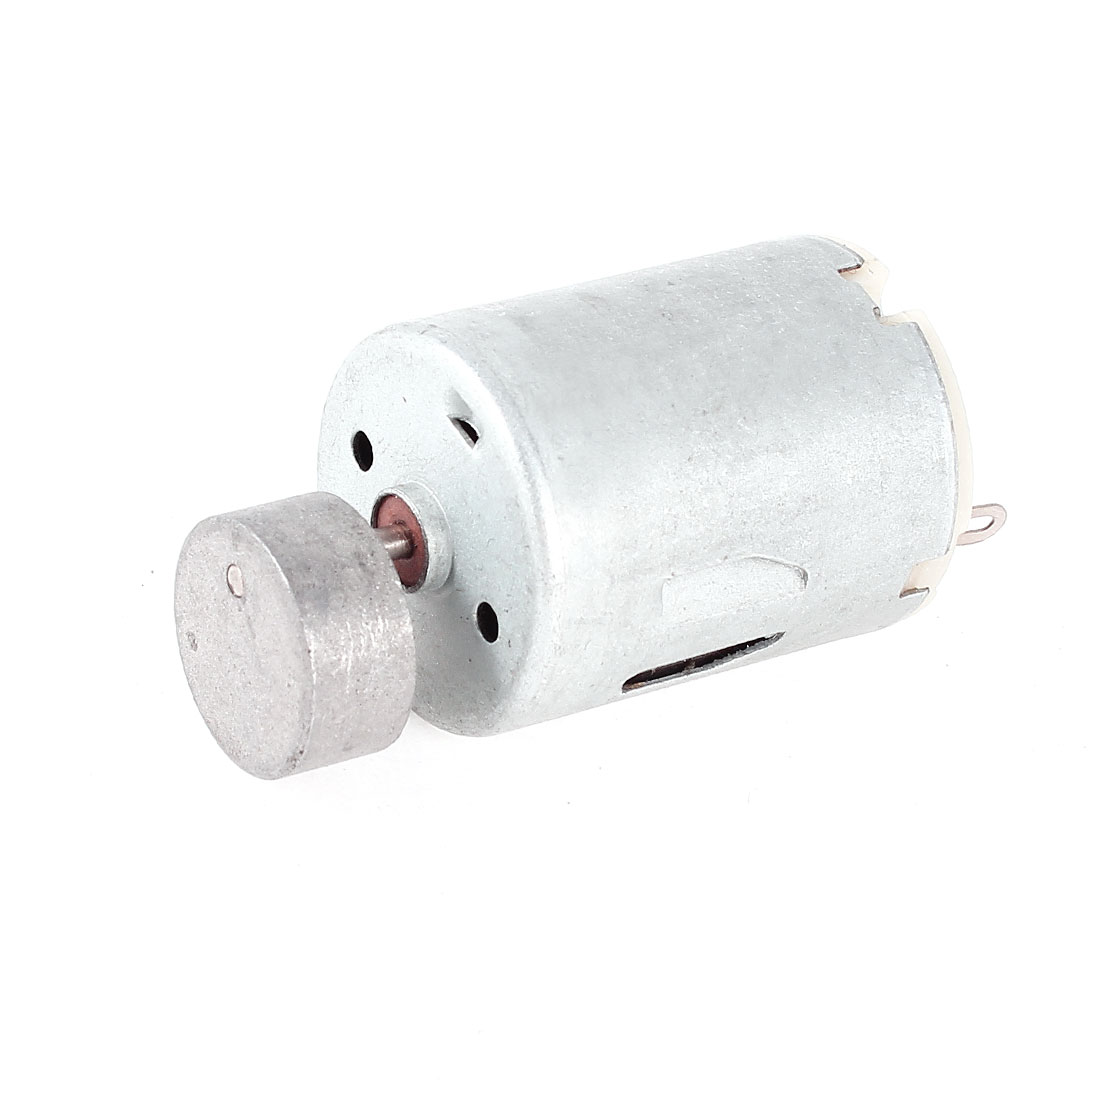 1inch-Dia-Mini-Vibration-Vibrating-Electric-Motor-DC-3-6V-12000RPM-280-Model